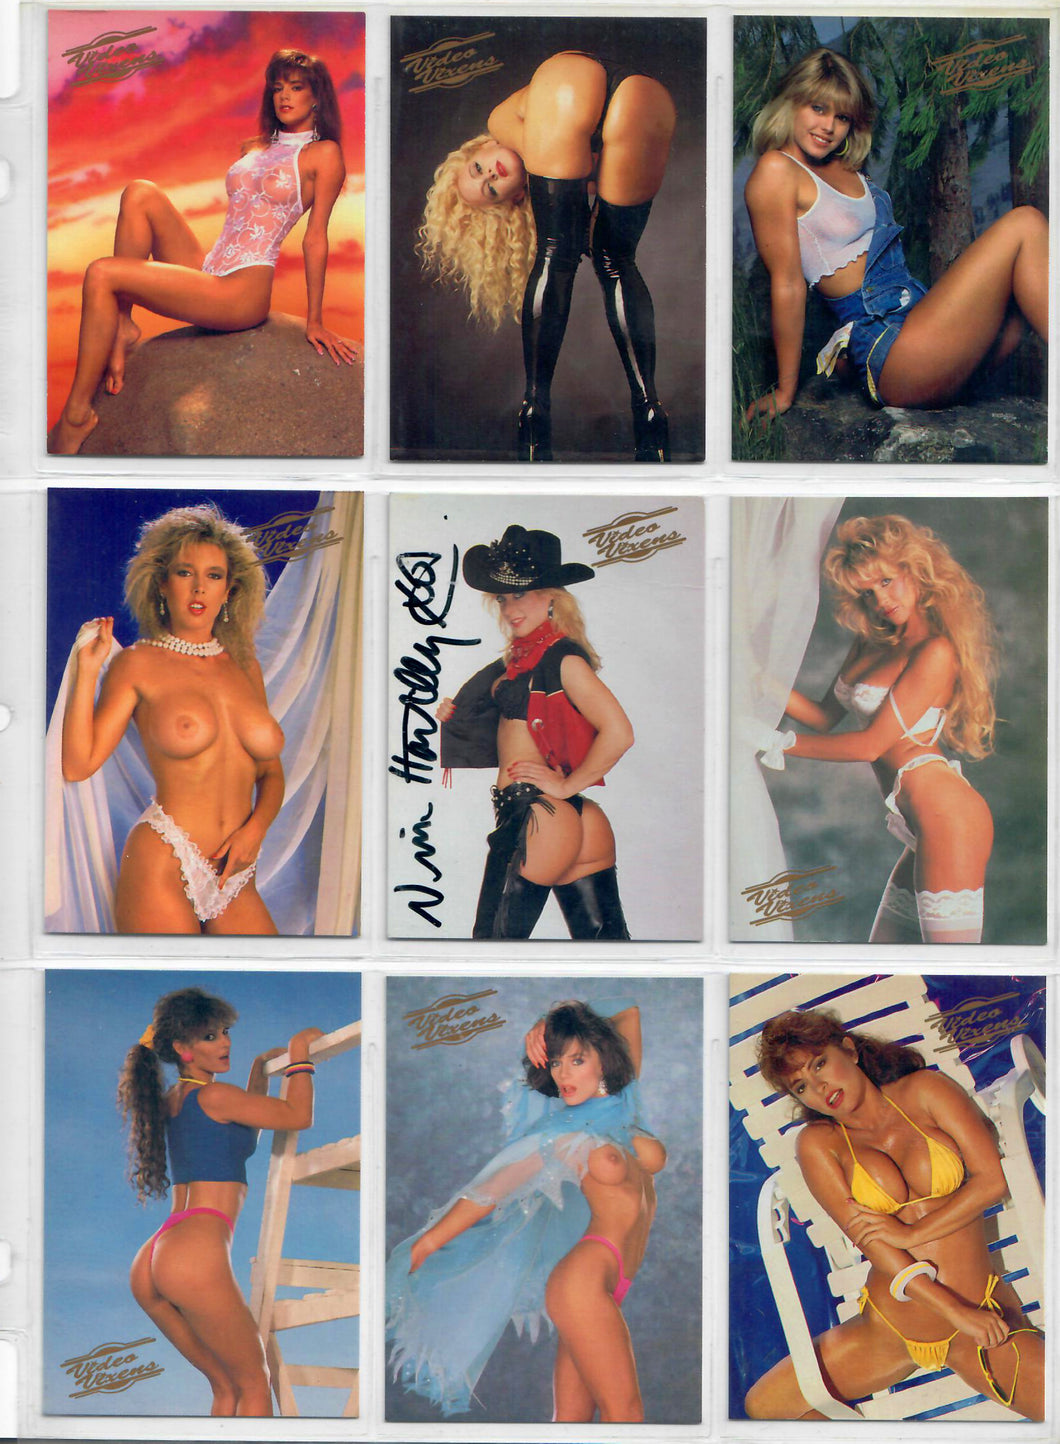 Video Vixens - Series 1  - Complete 48 Card Base Set - Decisive Marketing w/ Nina Hartley Autographed Card